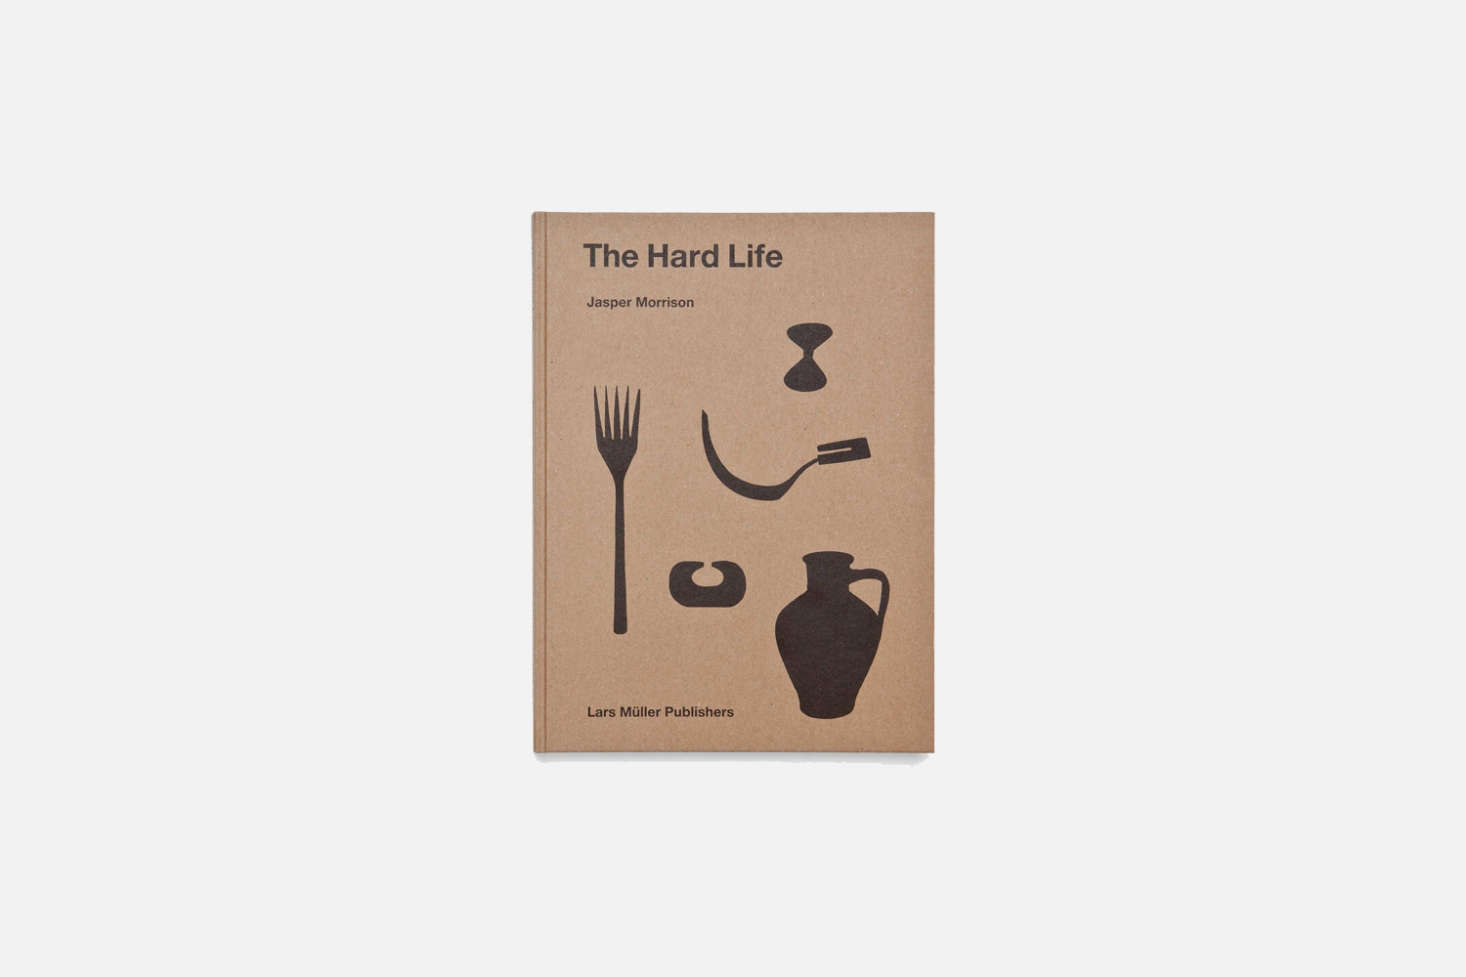 The Hard Life by English purist Jasper Morrison is $33.3